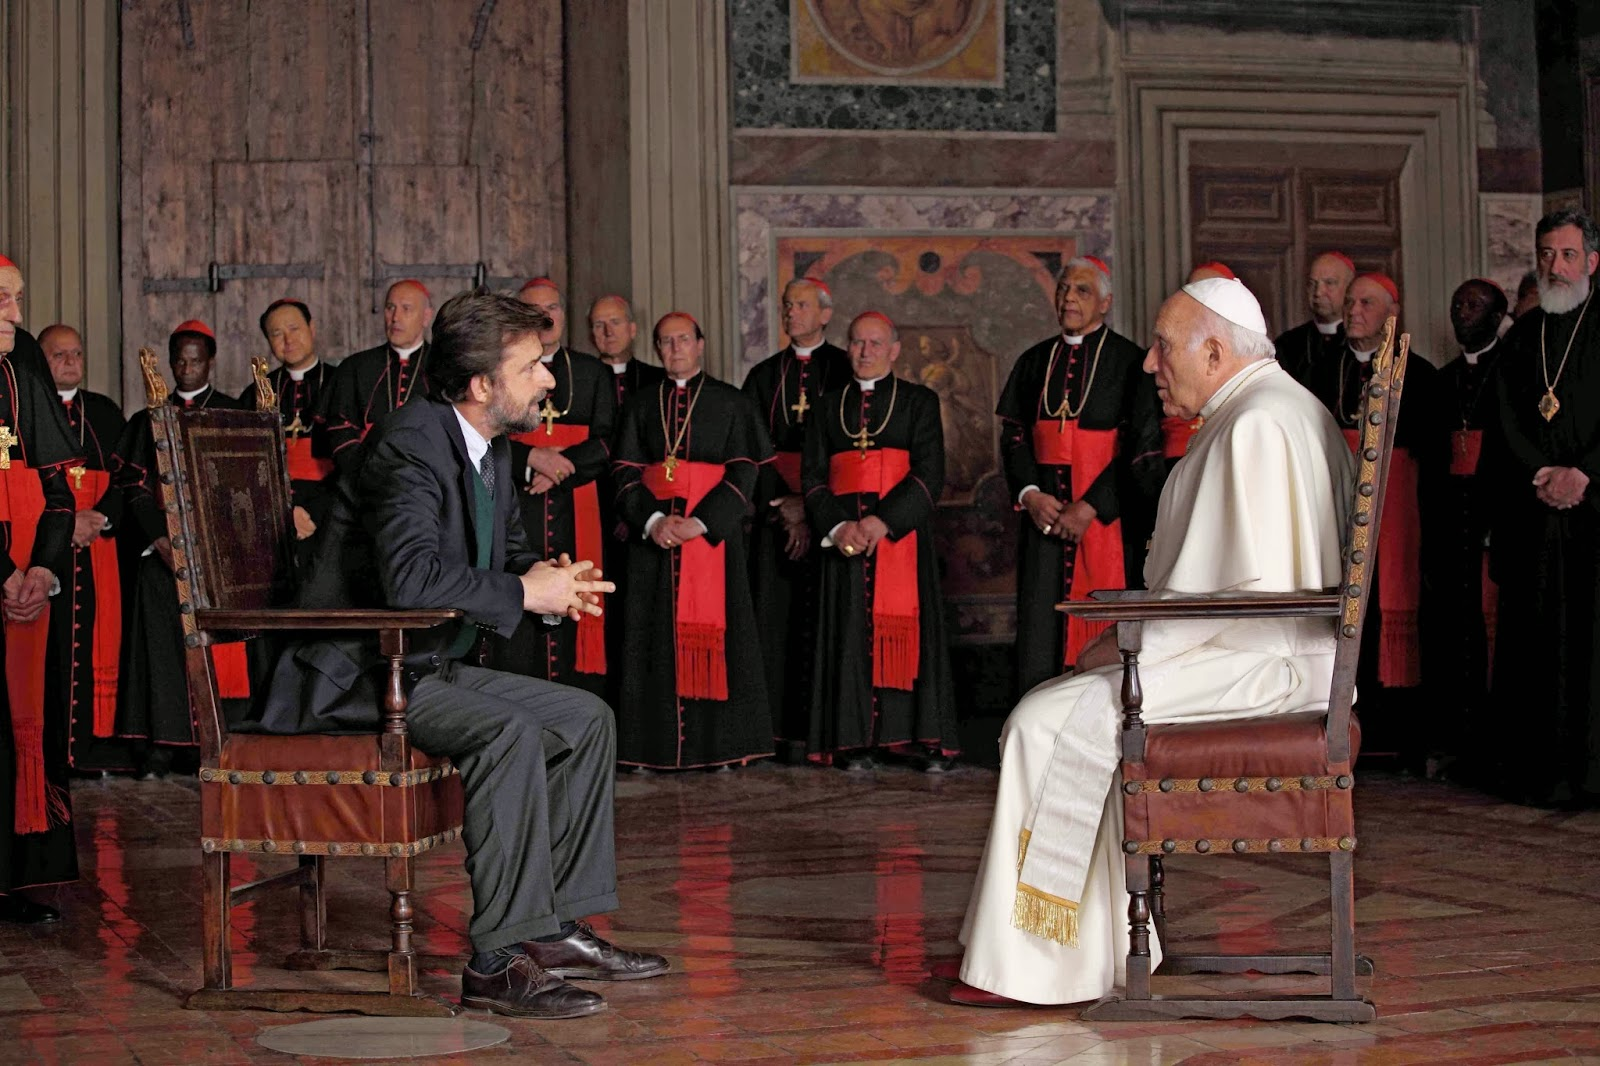 Nanni Moretti (left), Michel Piccoli (right) in We Have a Pope, Directed by Nanni Moretti